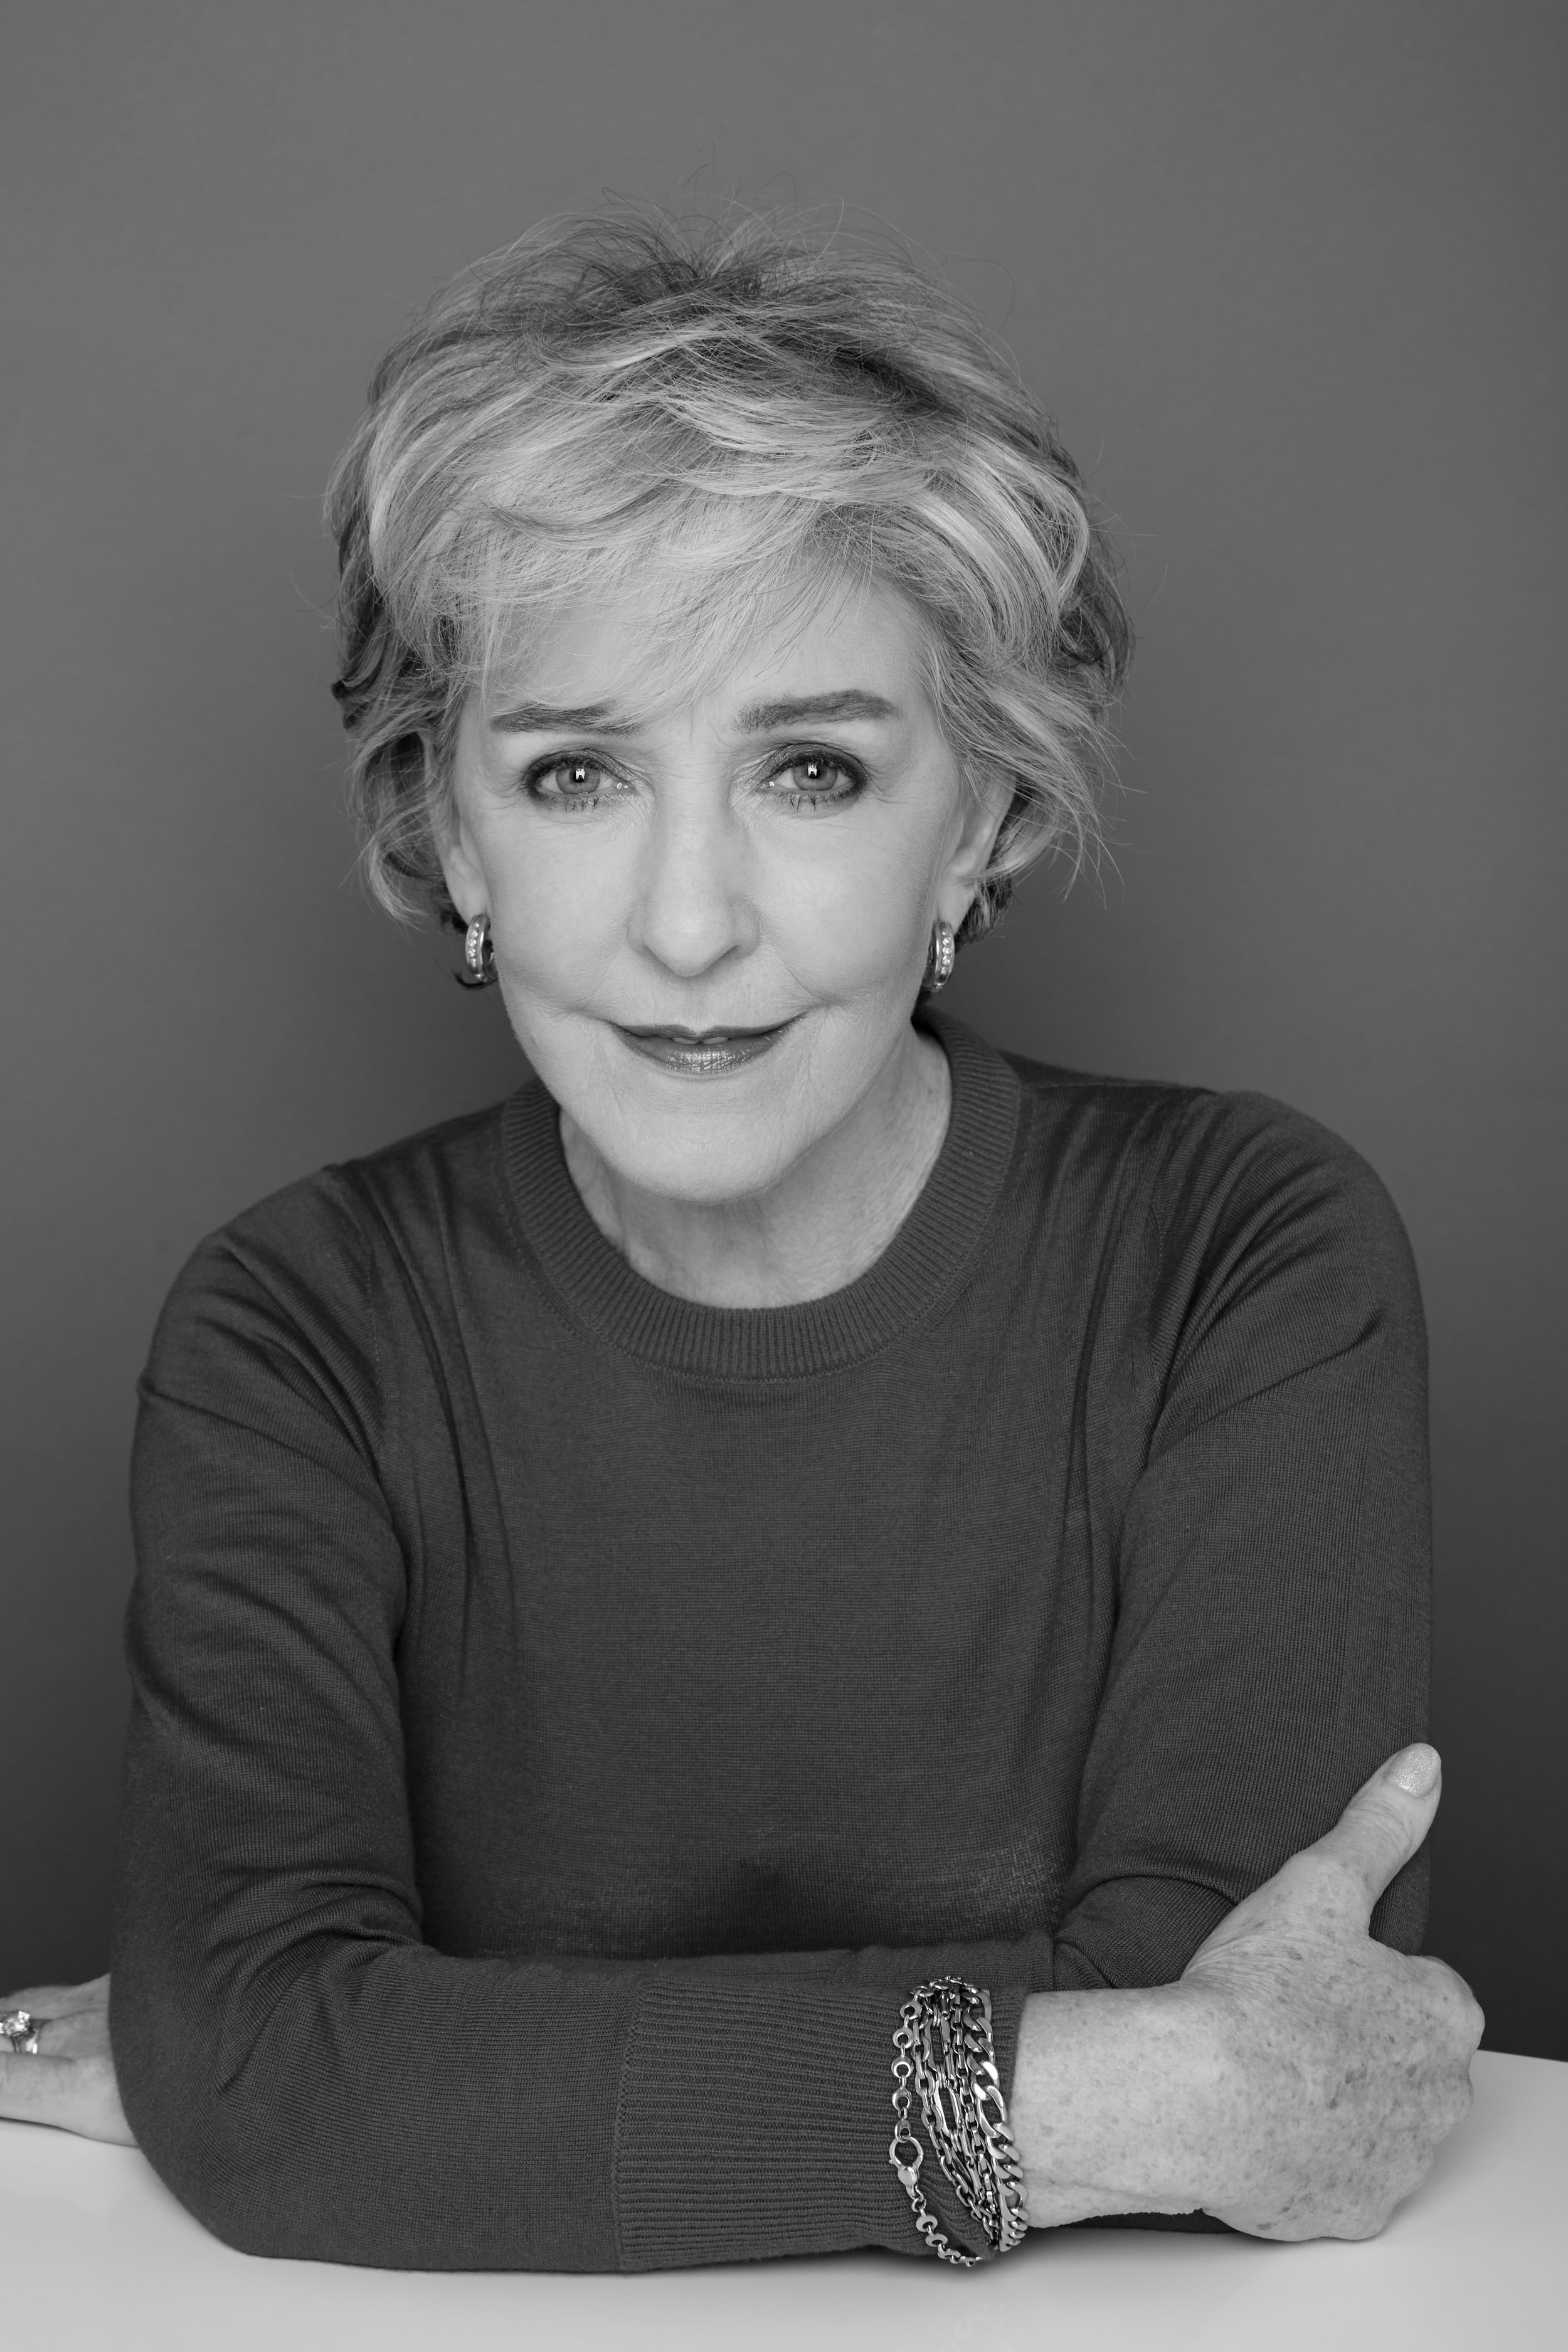 Patricia Hodge - I was brought up in a hotel on the North East Coast, with a large ballroom which was the perfect cradle for fantasy. I corralled my poor sister into performing endless two character versions of Play for Today, Coronation Street and Sunday Night at the London Palladium. When I was ten, having been persuaded by a friend to join her, my mother took me to the Emerald City, known as London, to see Where the Rainbow Ends (an amazing annual fable with songs, ballet and pageantry). That was the moment my life changed. It was beyond anything my imagination had provided. The child that experienced that is still in everything I do.